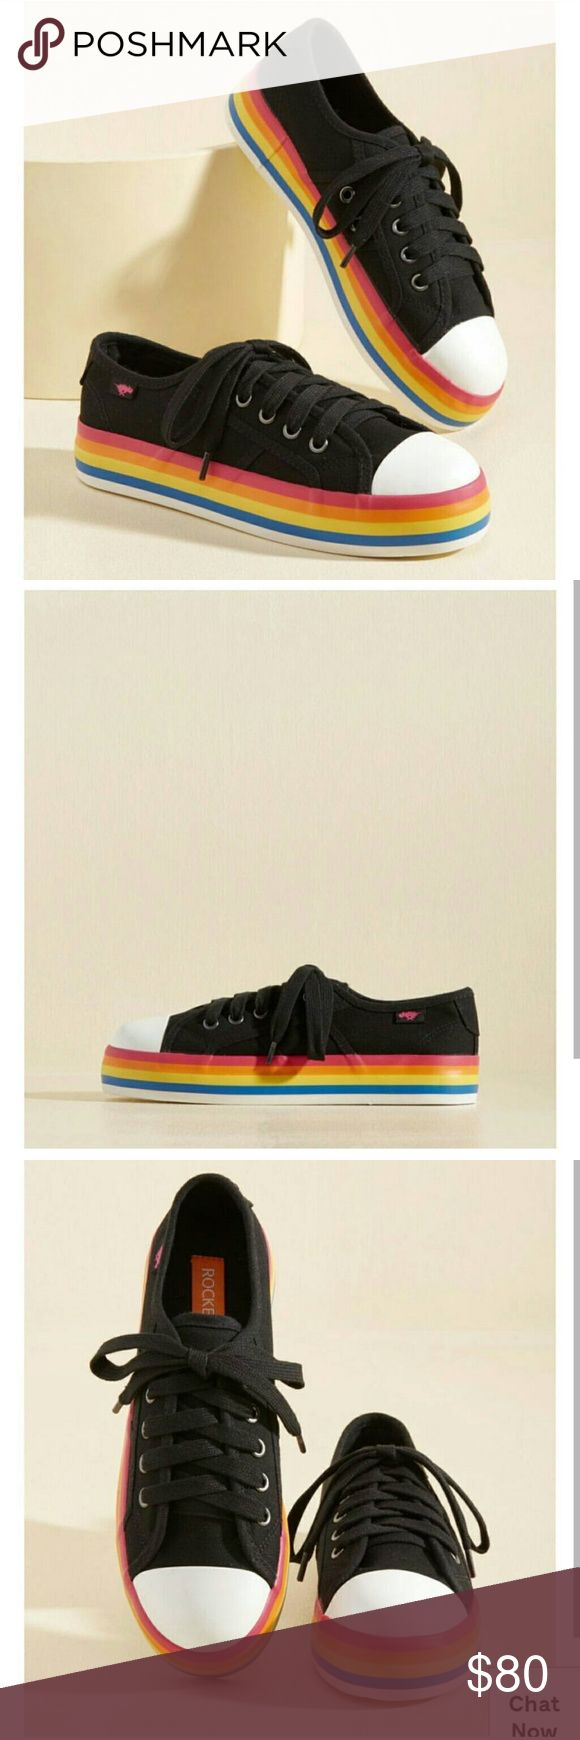 Modcloth Chroma Full Circle Sneaker Your optimistic attitude and aspirational lifestyle have led you to these black canvas sneakers, which infuse your style with positivity. Turns out, repping the rainbow flatform soles and white toe caps of these eye-catching Rocket Dogs offers a heightened sense of elation in return! Funny how that works!  Size 10. Nearly brand new - wore for exactly 20 minutes before I realized they were too large. Best for a 10 or 10.5. Sold out on Modcloth! Modcloth…